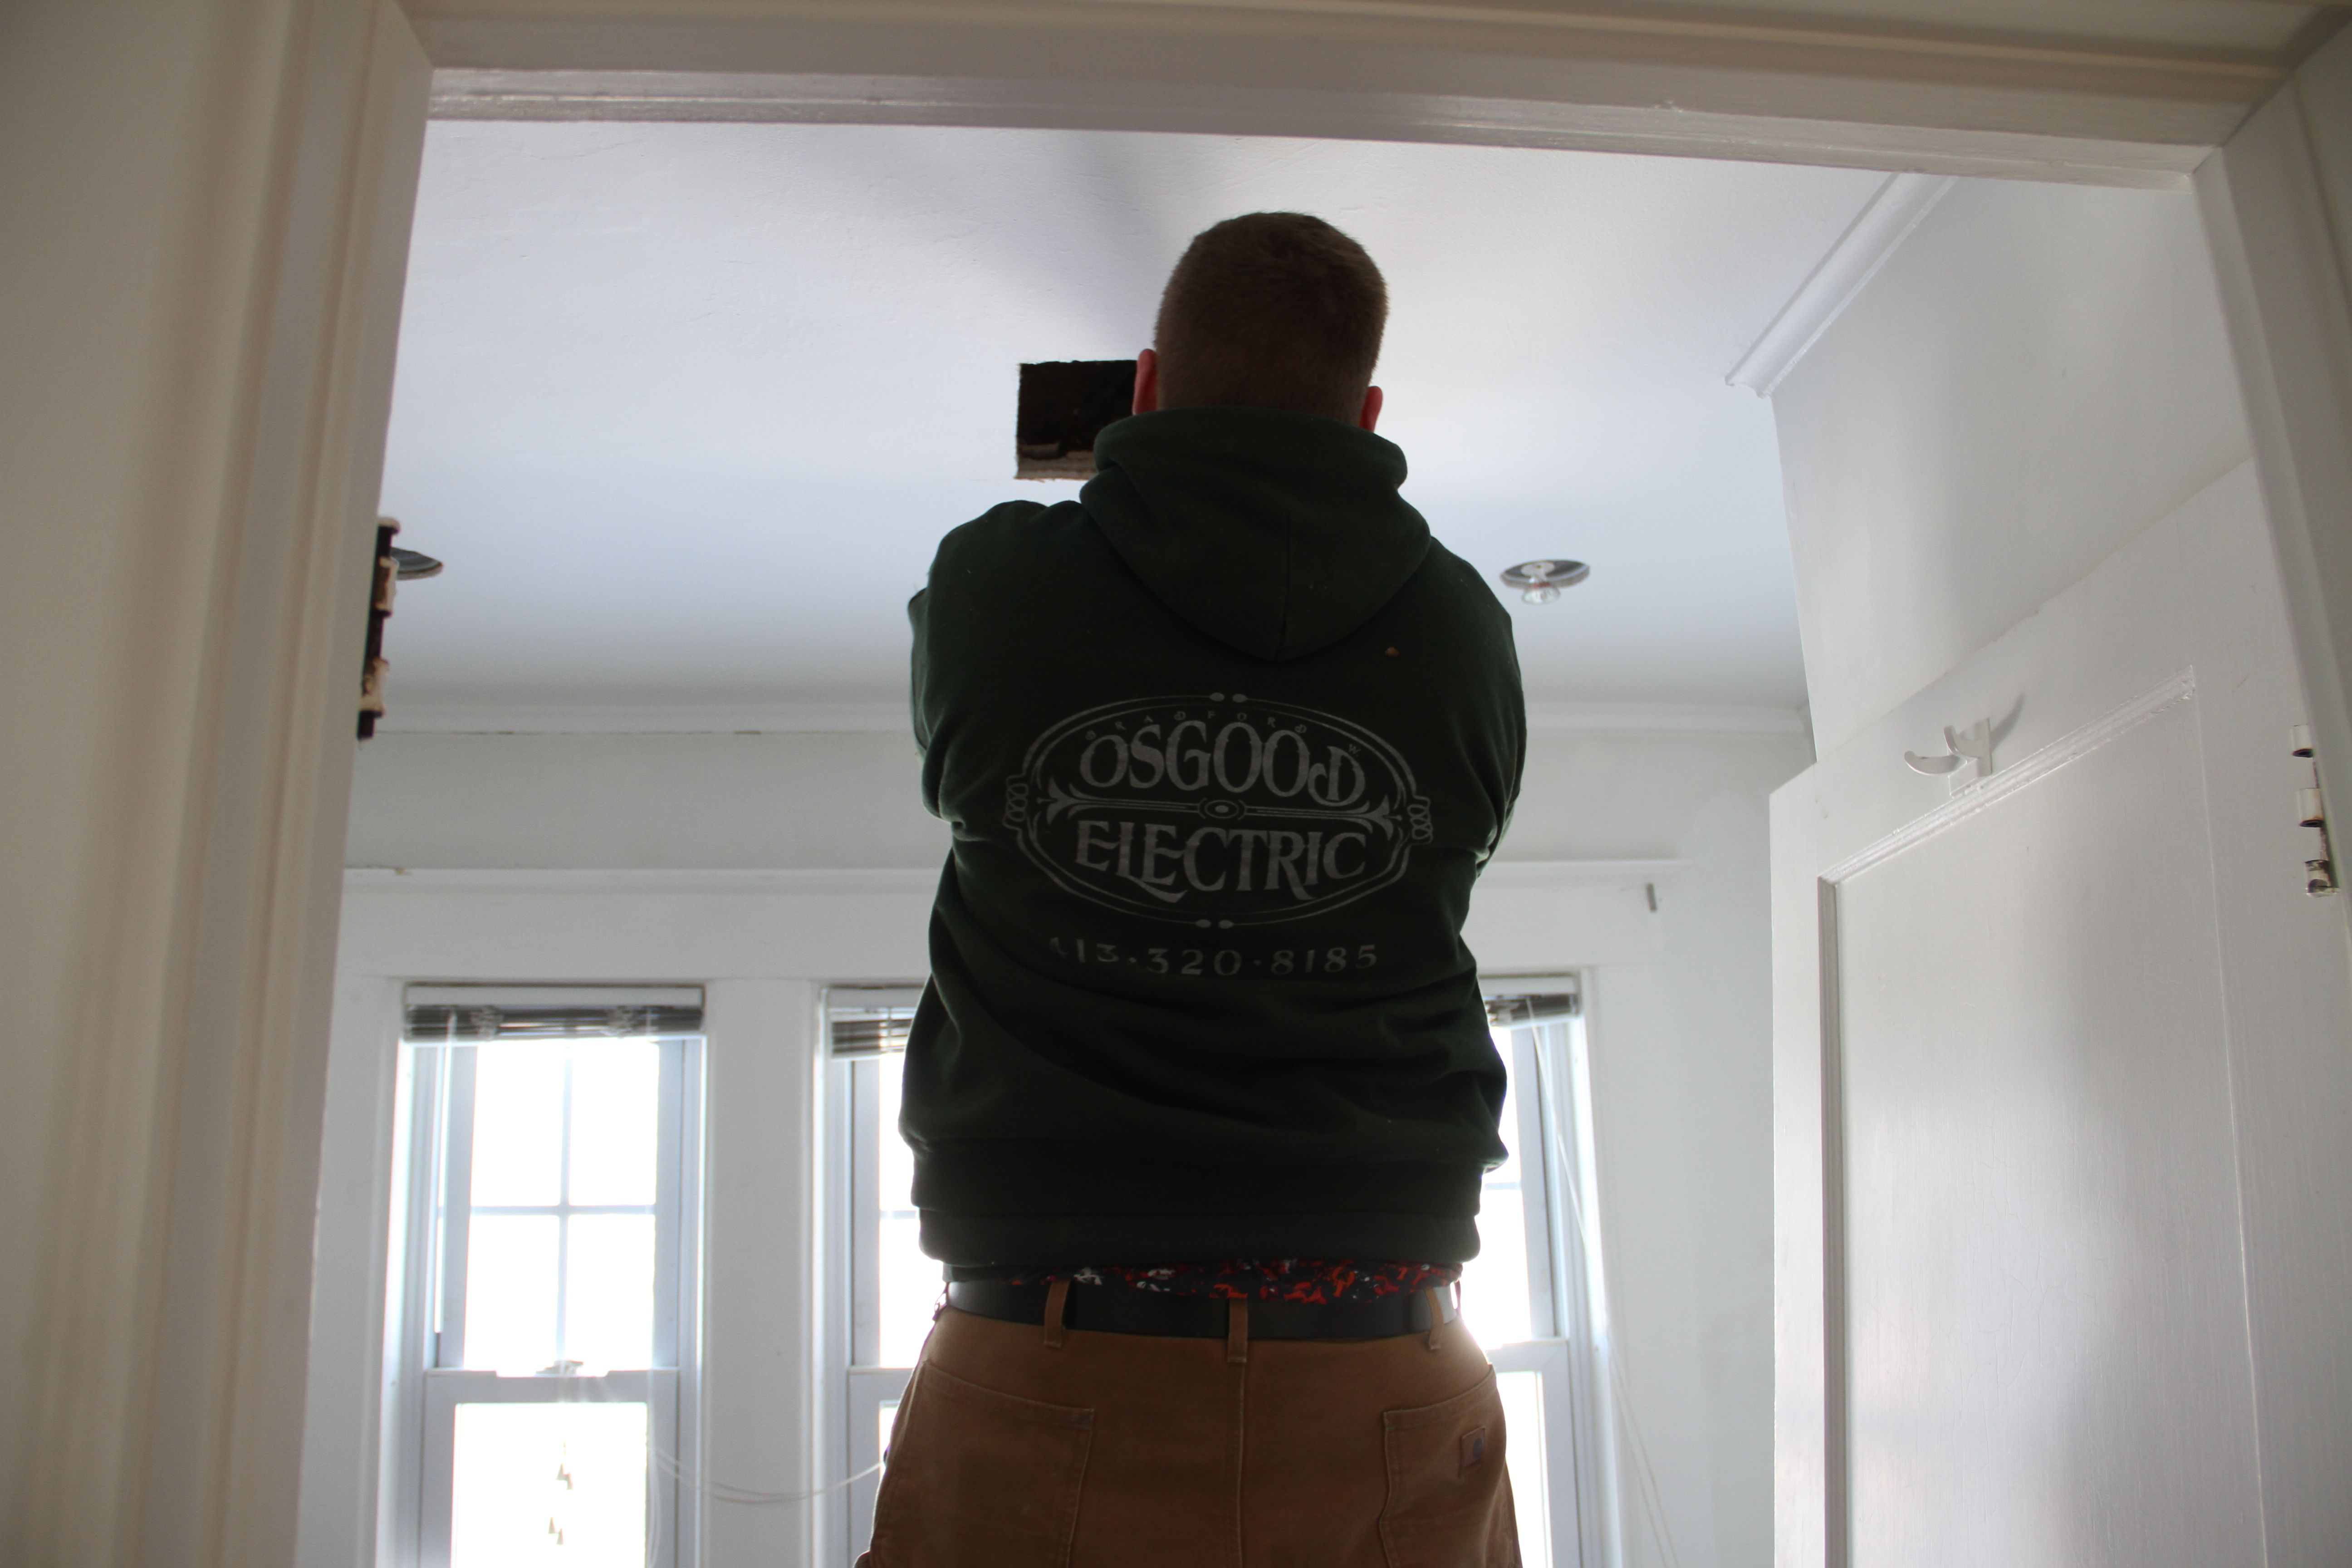 Back to the future, where Brad was installing our uber quiet (whisper quiet) ceiling fan. Love those things.